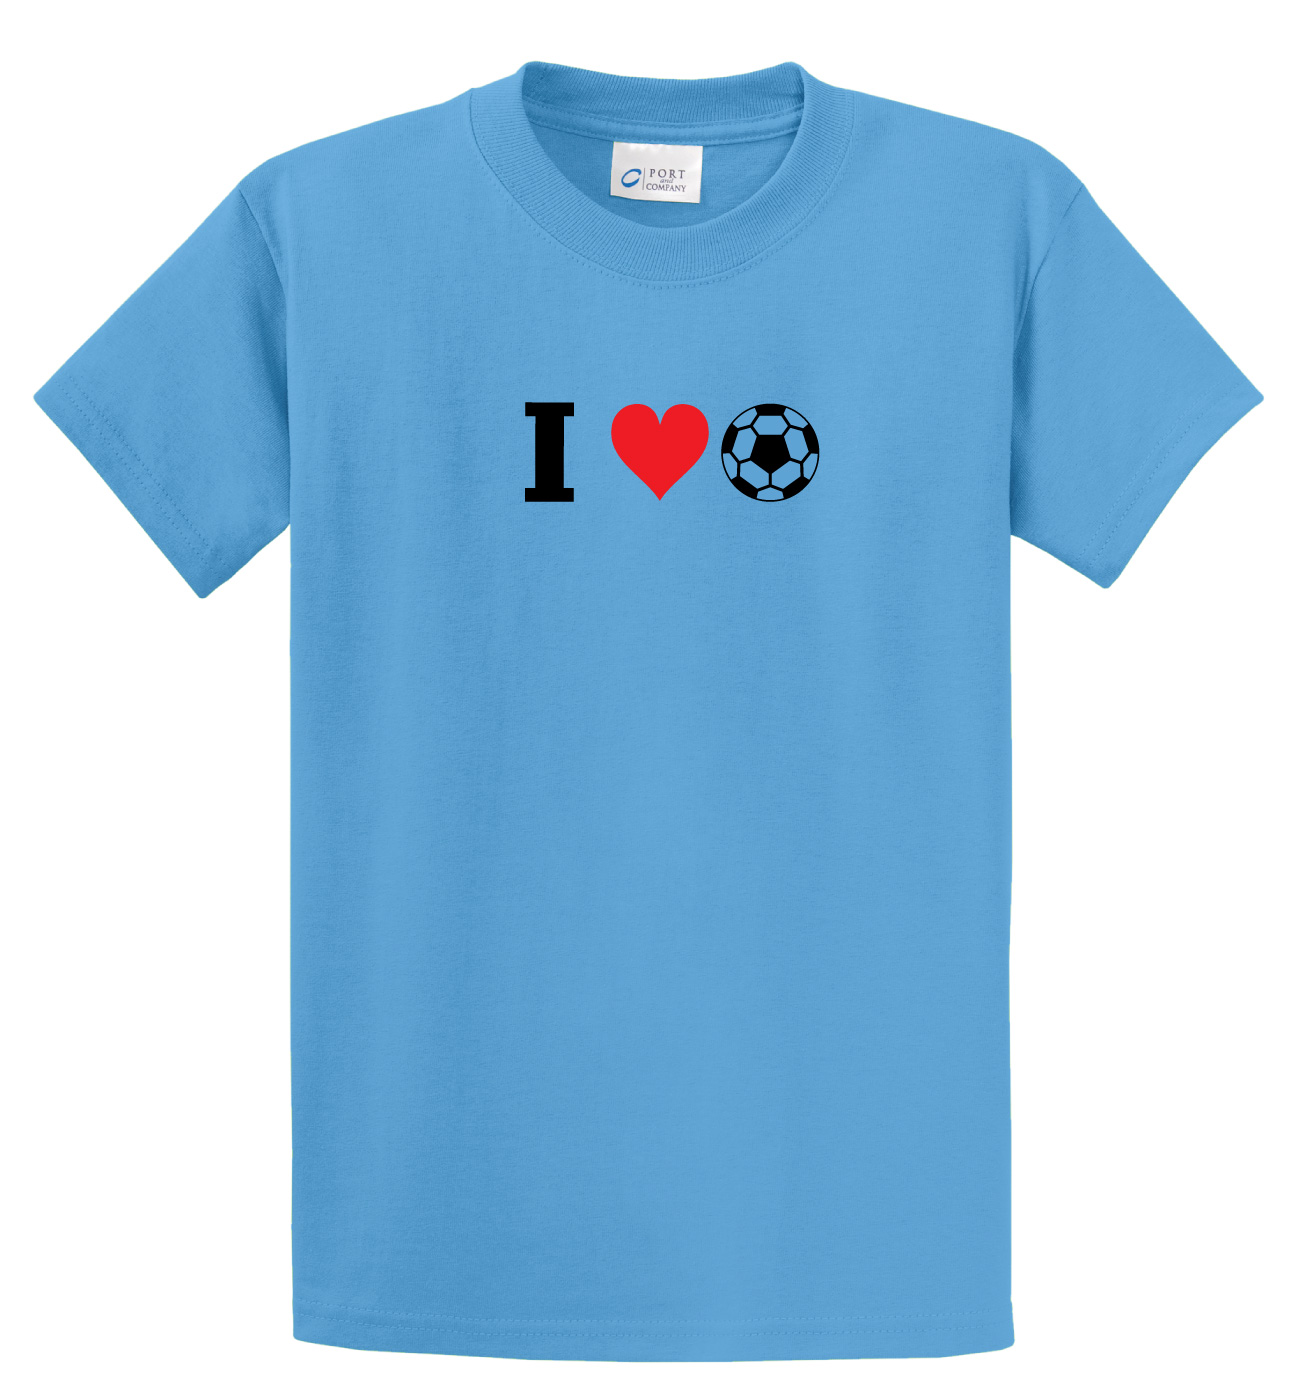 I Love soccer tee in aqua